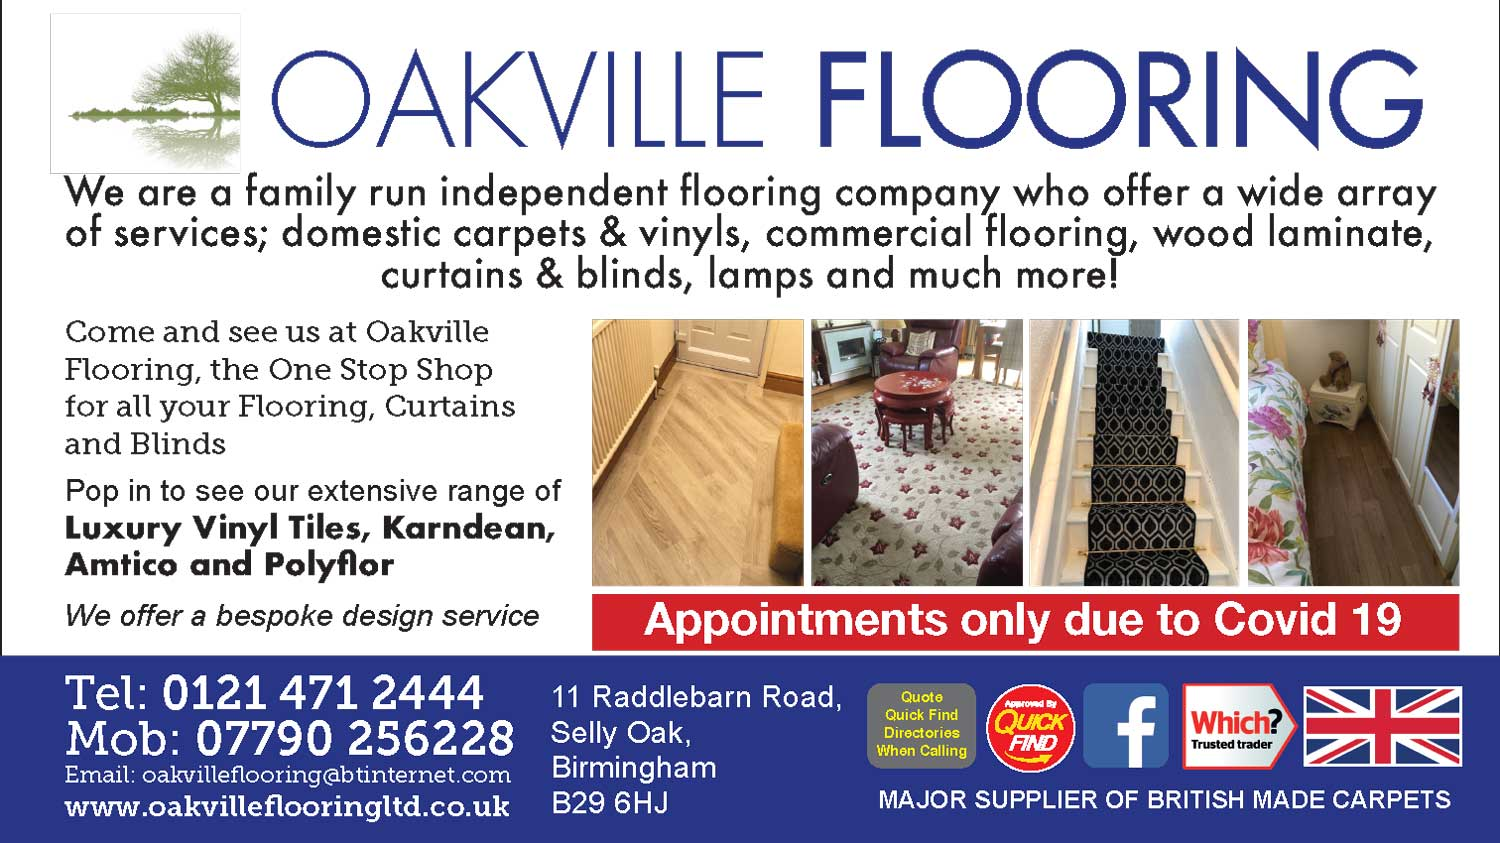 Oakville Flooring Ltd